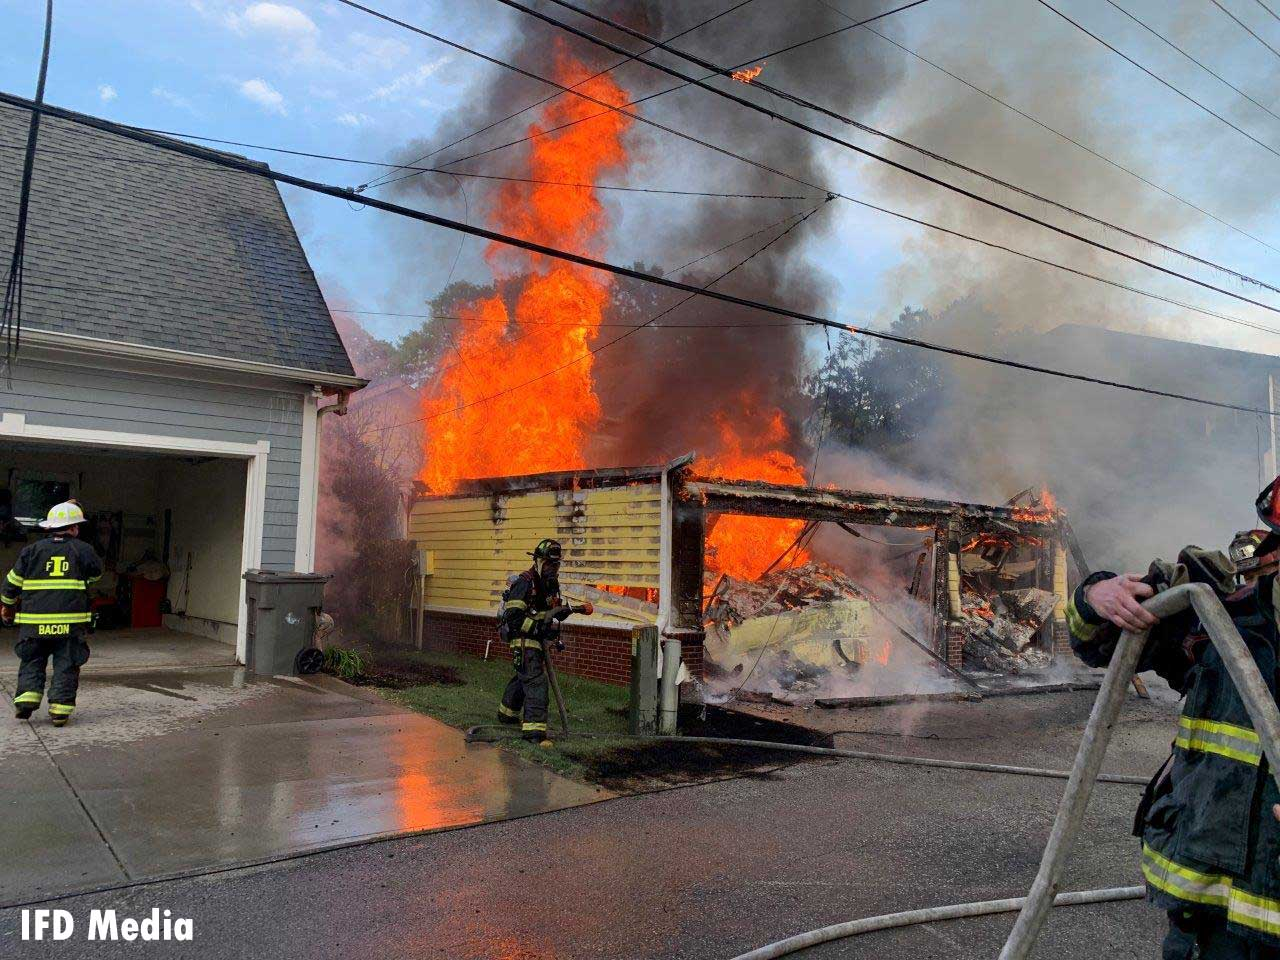 Flames shoot from a structure in Indianapolis as firefighters work